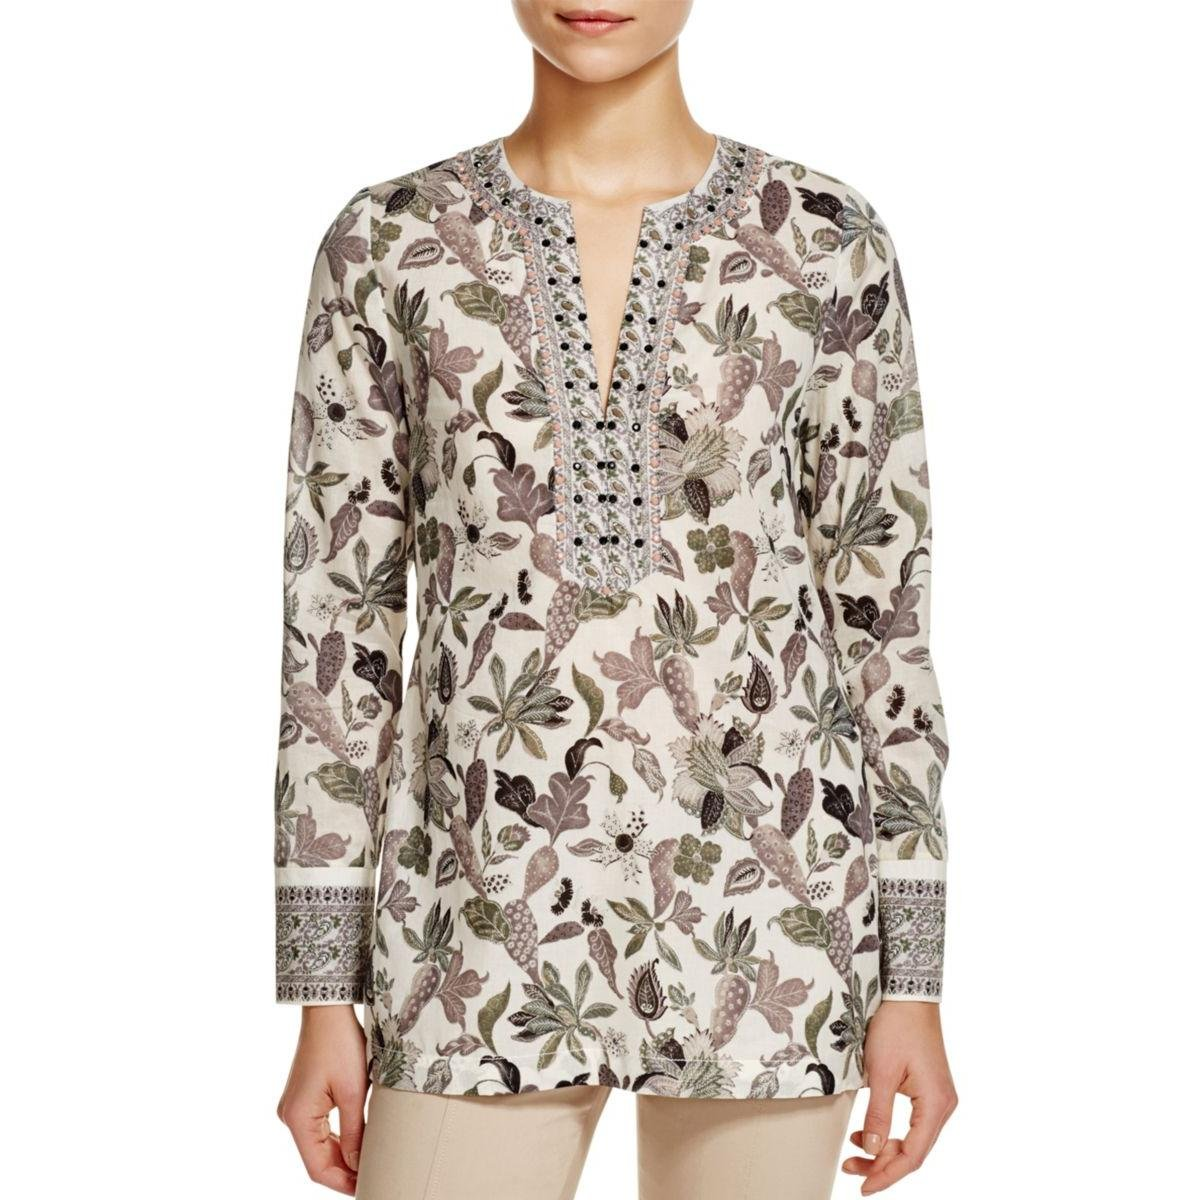 Tory Burch Womens Cotton Embellished Tunic Top Ivory 6